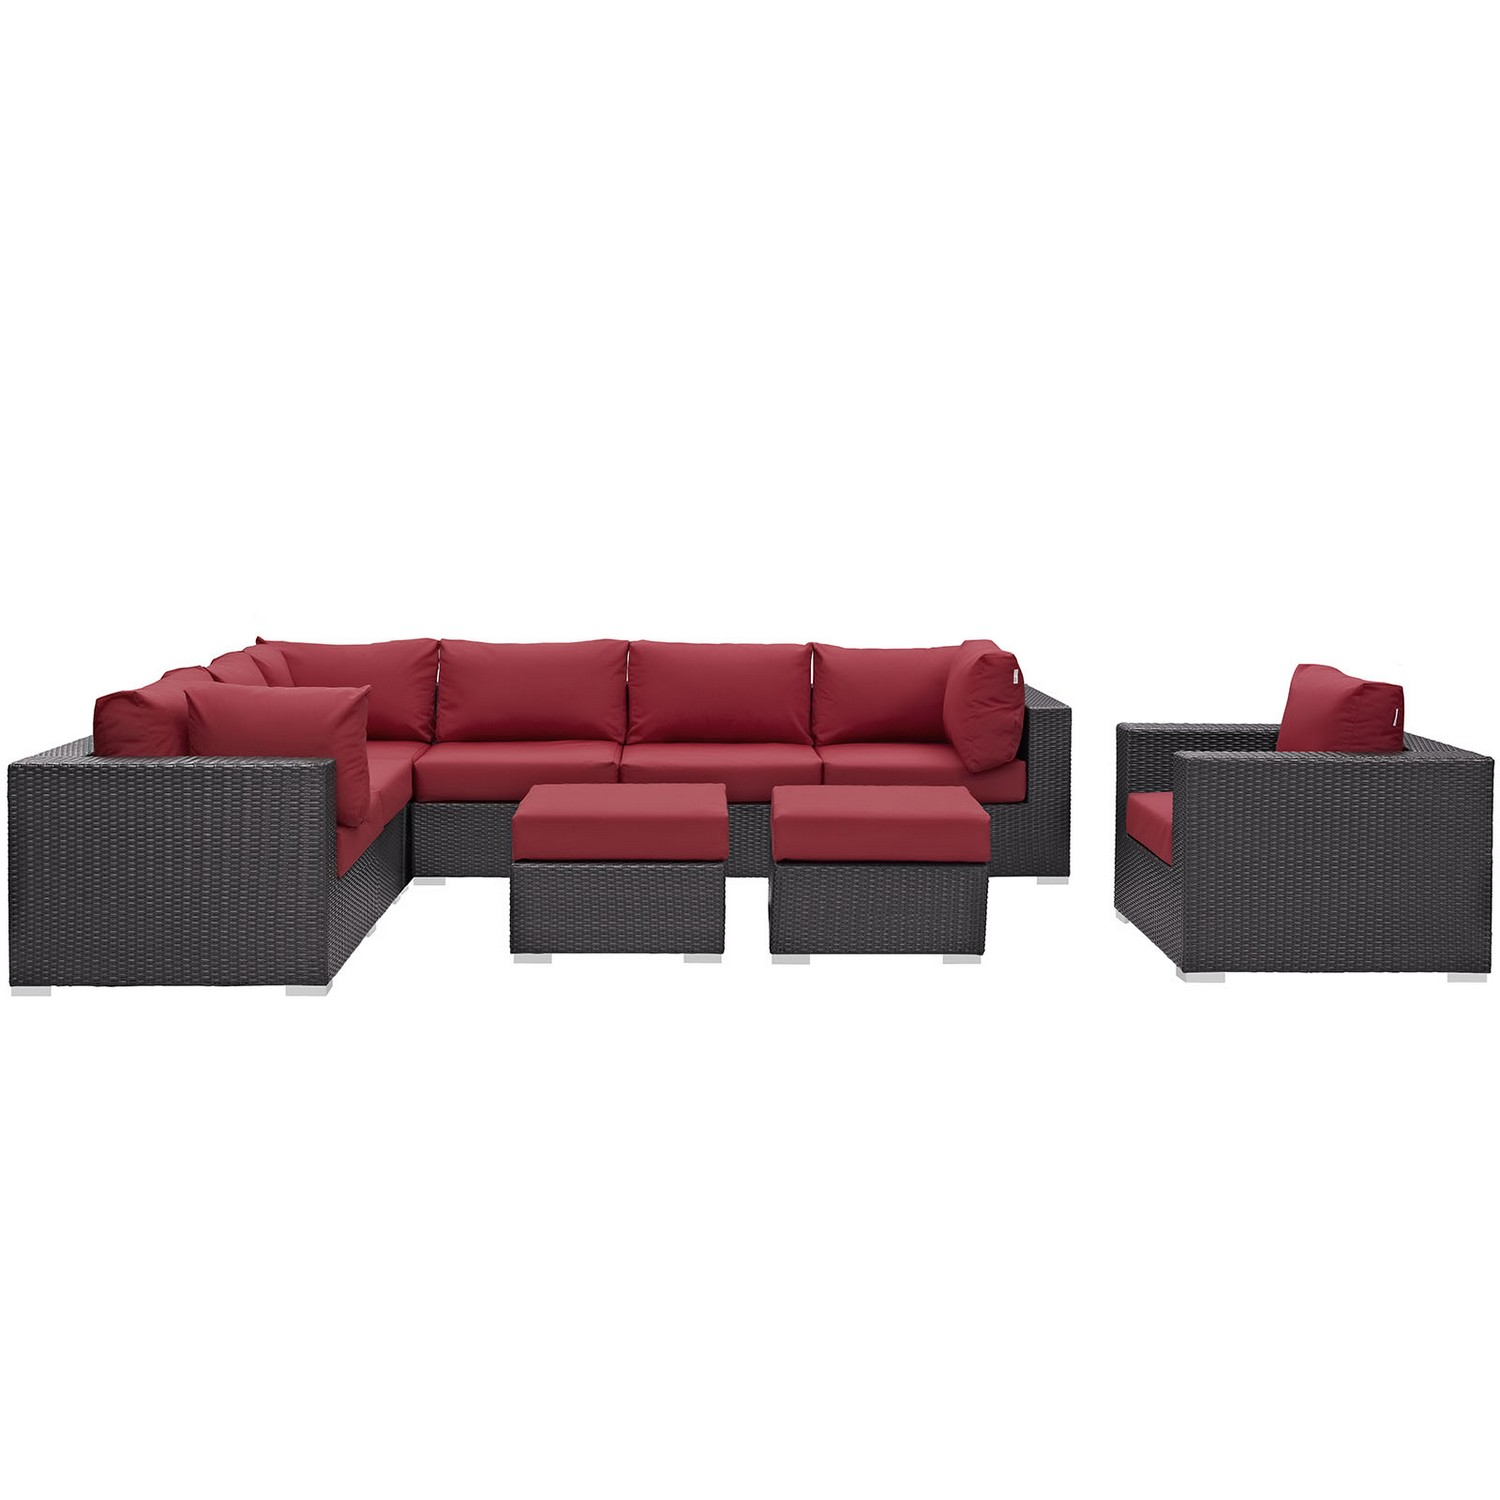 Modway Convene 9 Piece Outdoor Patio Sectional Set - Espresso Red